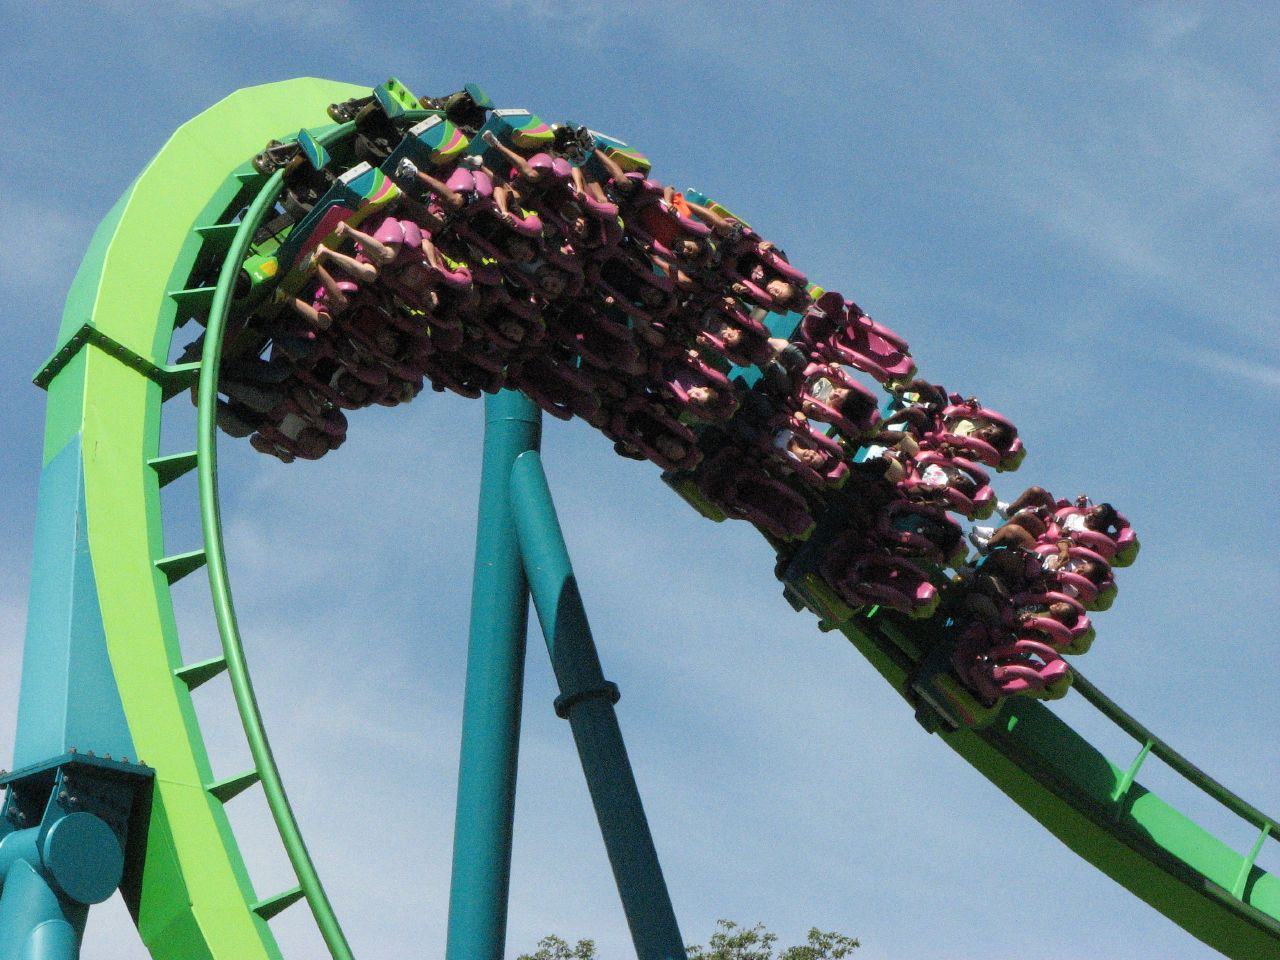 If you want a memorable date, go see a scary movie or ride a rollercoaster.   hounddiggity/Flickr  (CC BY-NC 2.0)